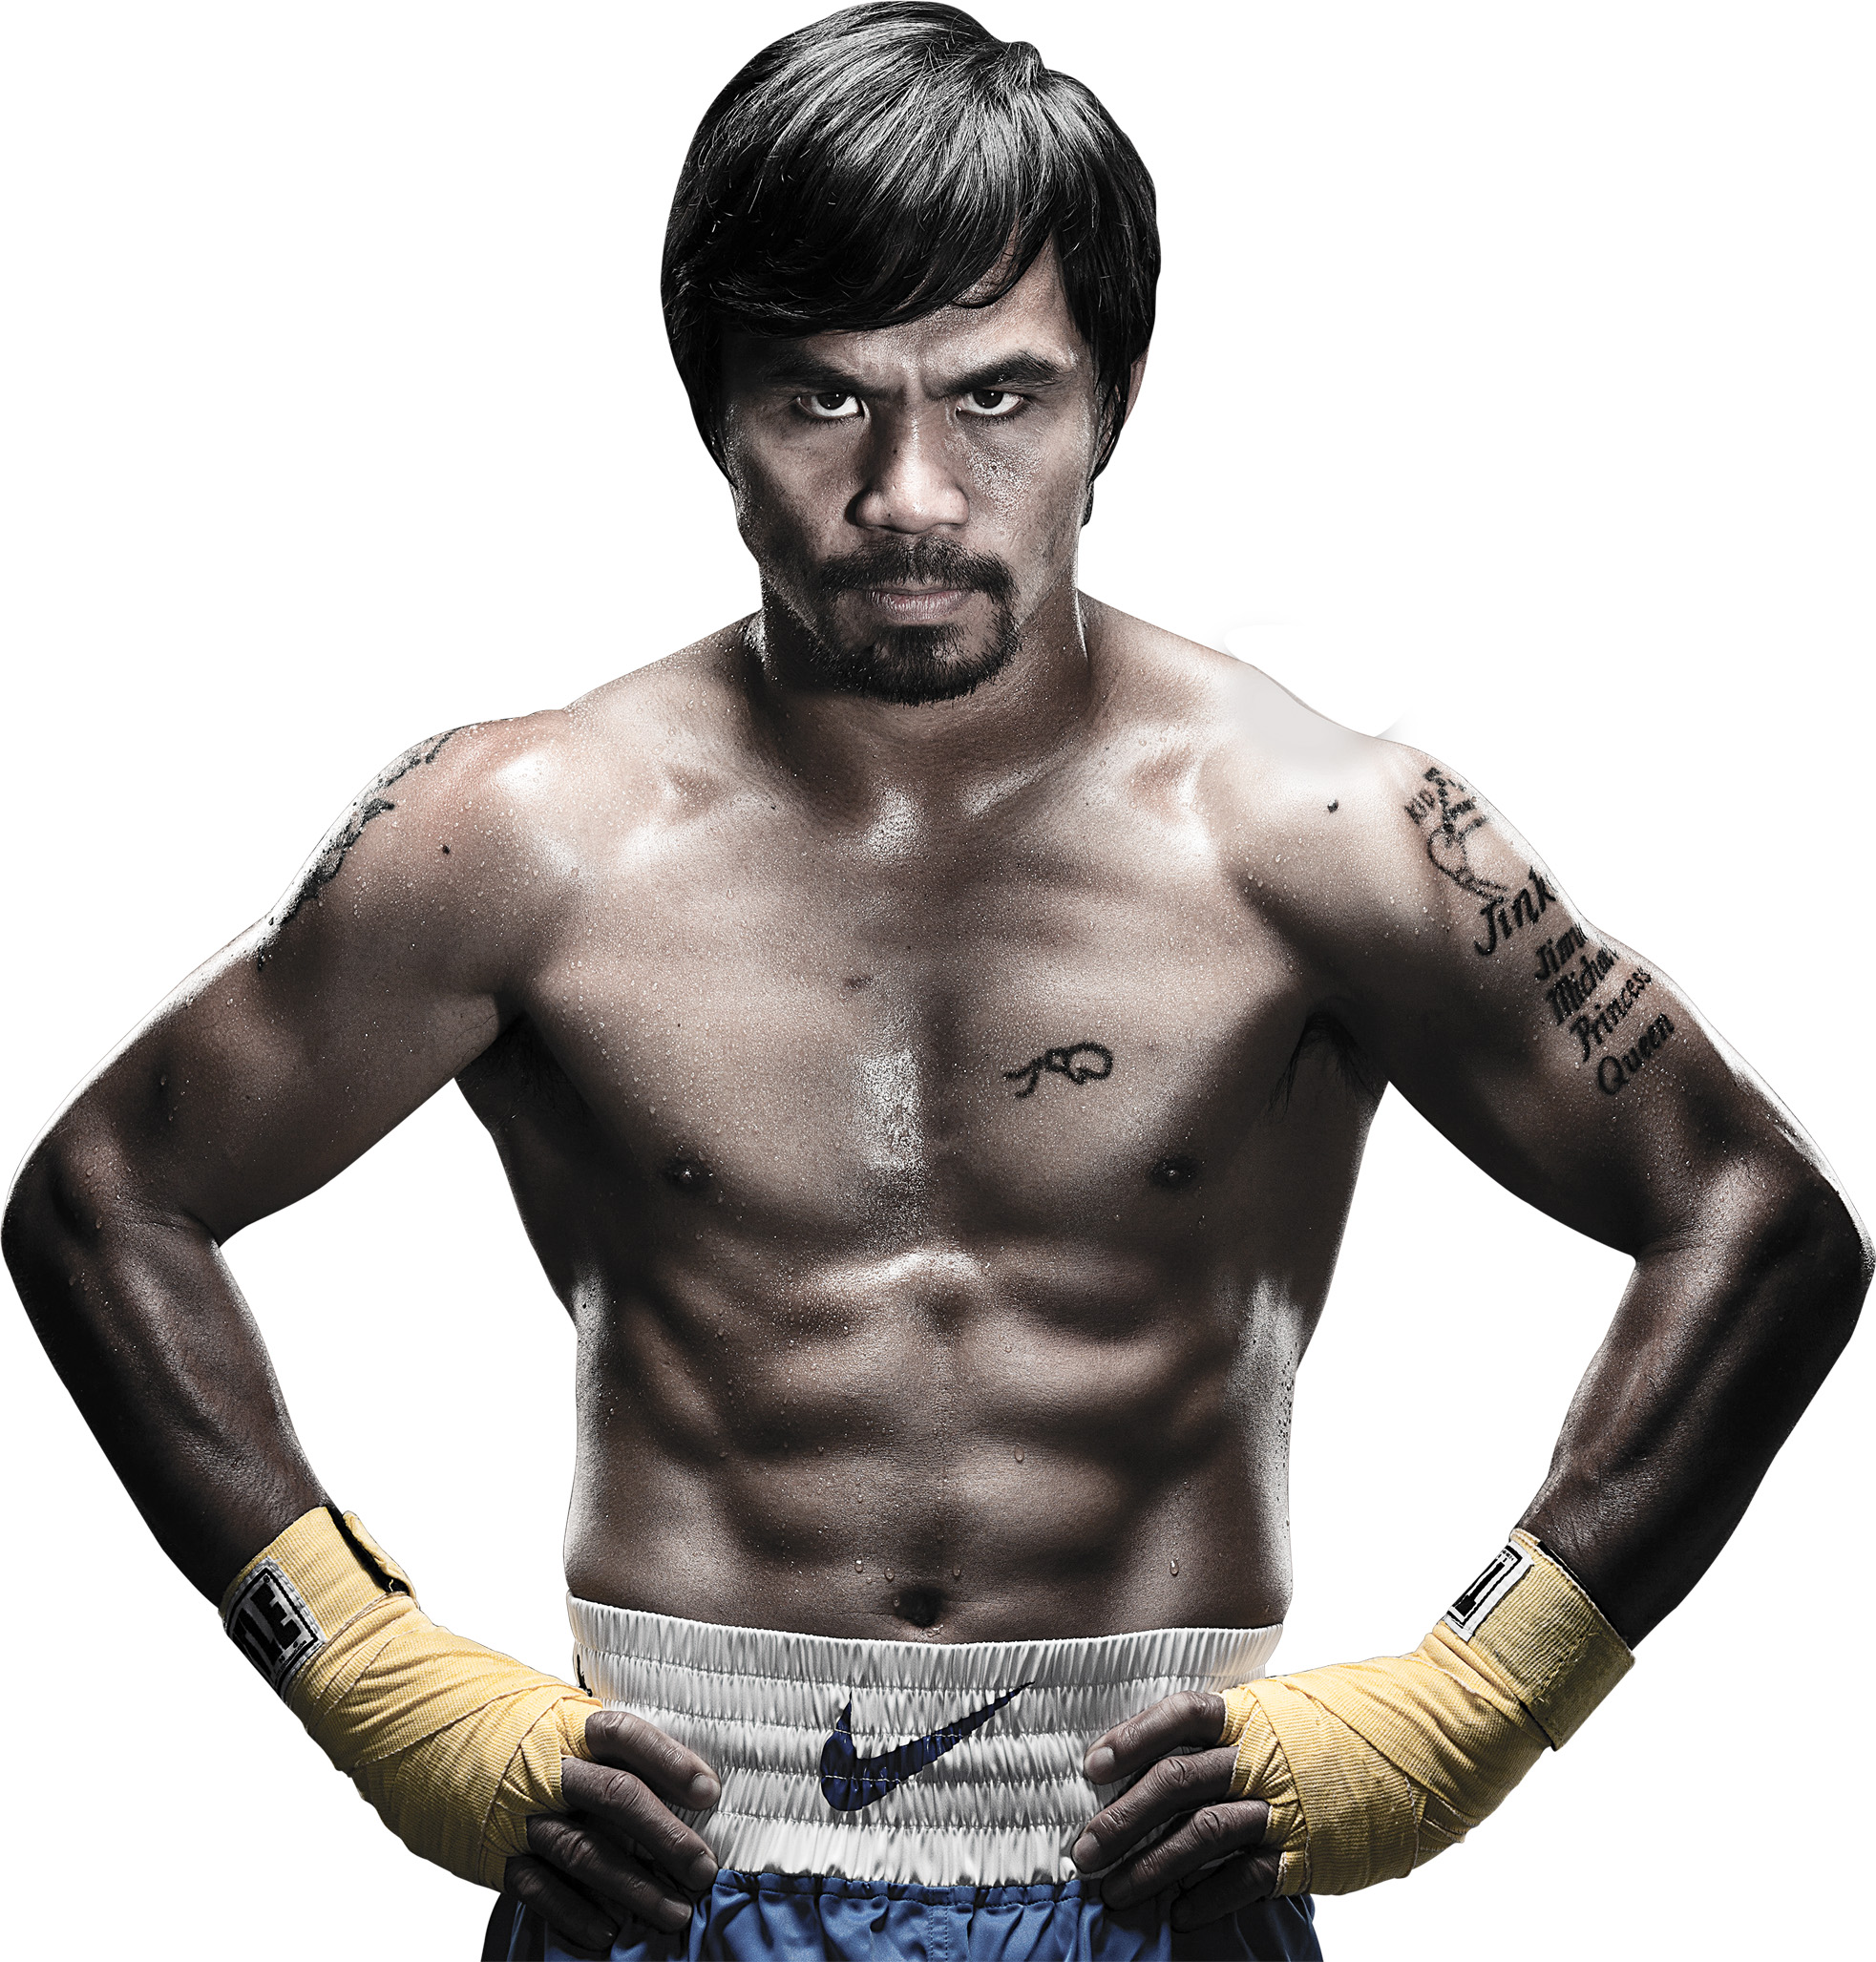 is manny 'pacman' pacquiao really a Manny pacman pacquiao - filipino 8 division world champion  manny pacquiao got punched really hard in the face this weekend for a shocking boxing loss.